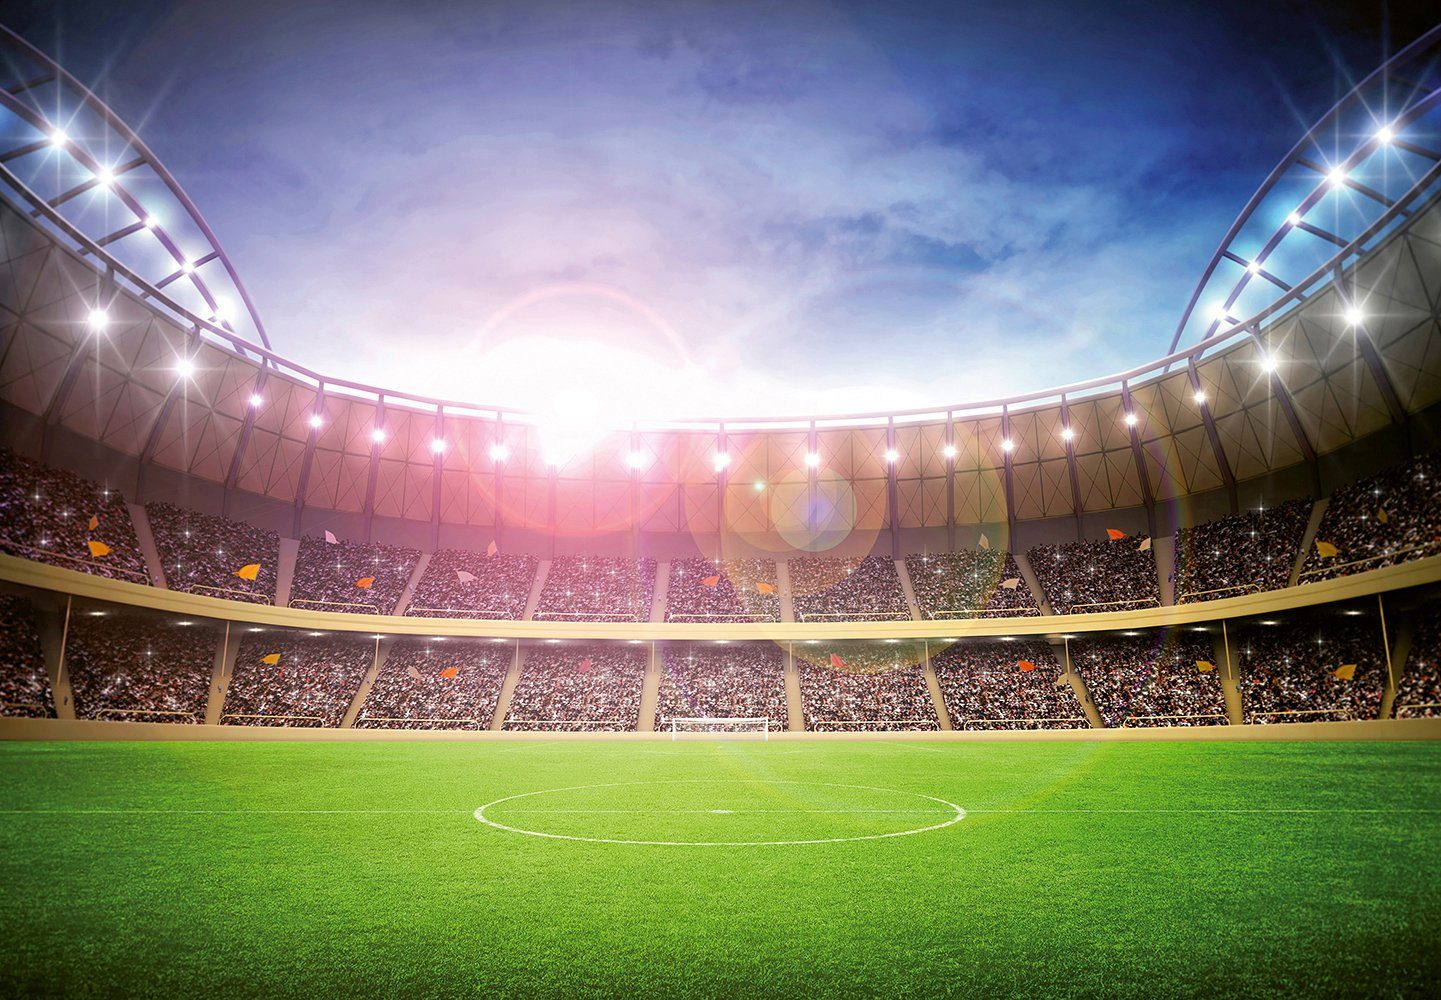 Fototapete »Stadium at Night«, 8-teilig, 366x254 cm